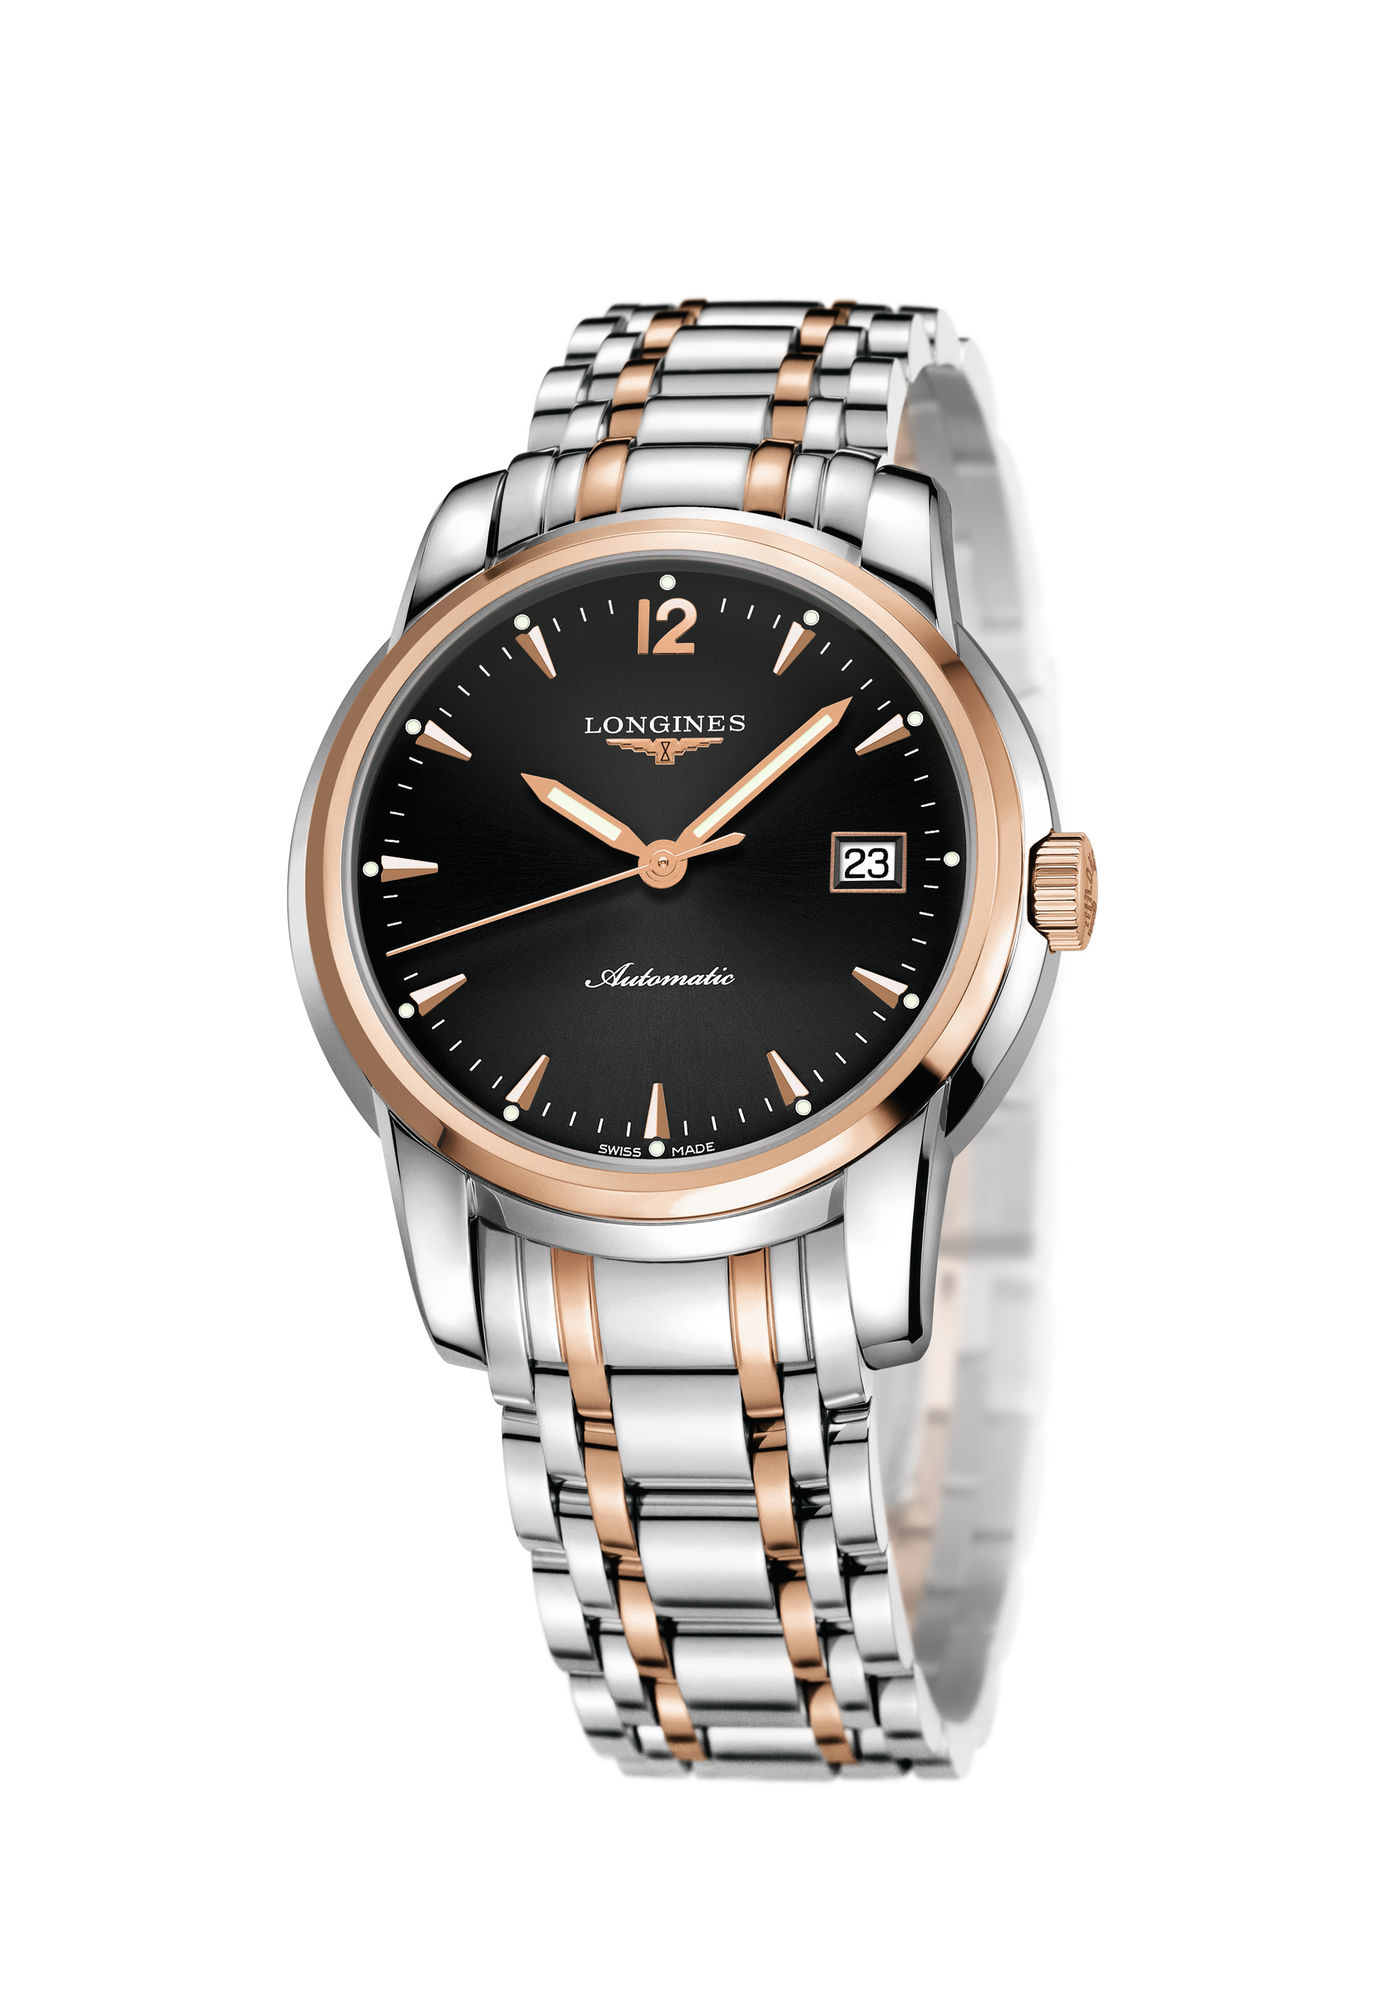 Longines The Longines Saint-Imier Collection Watch 11